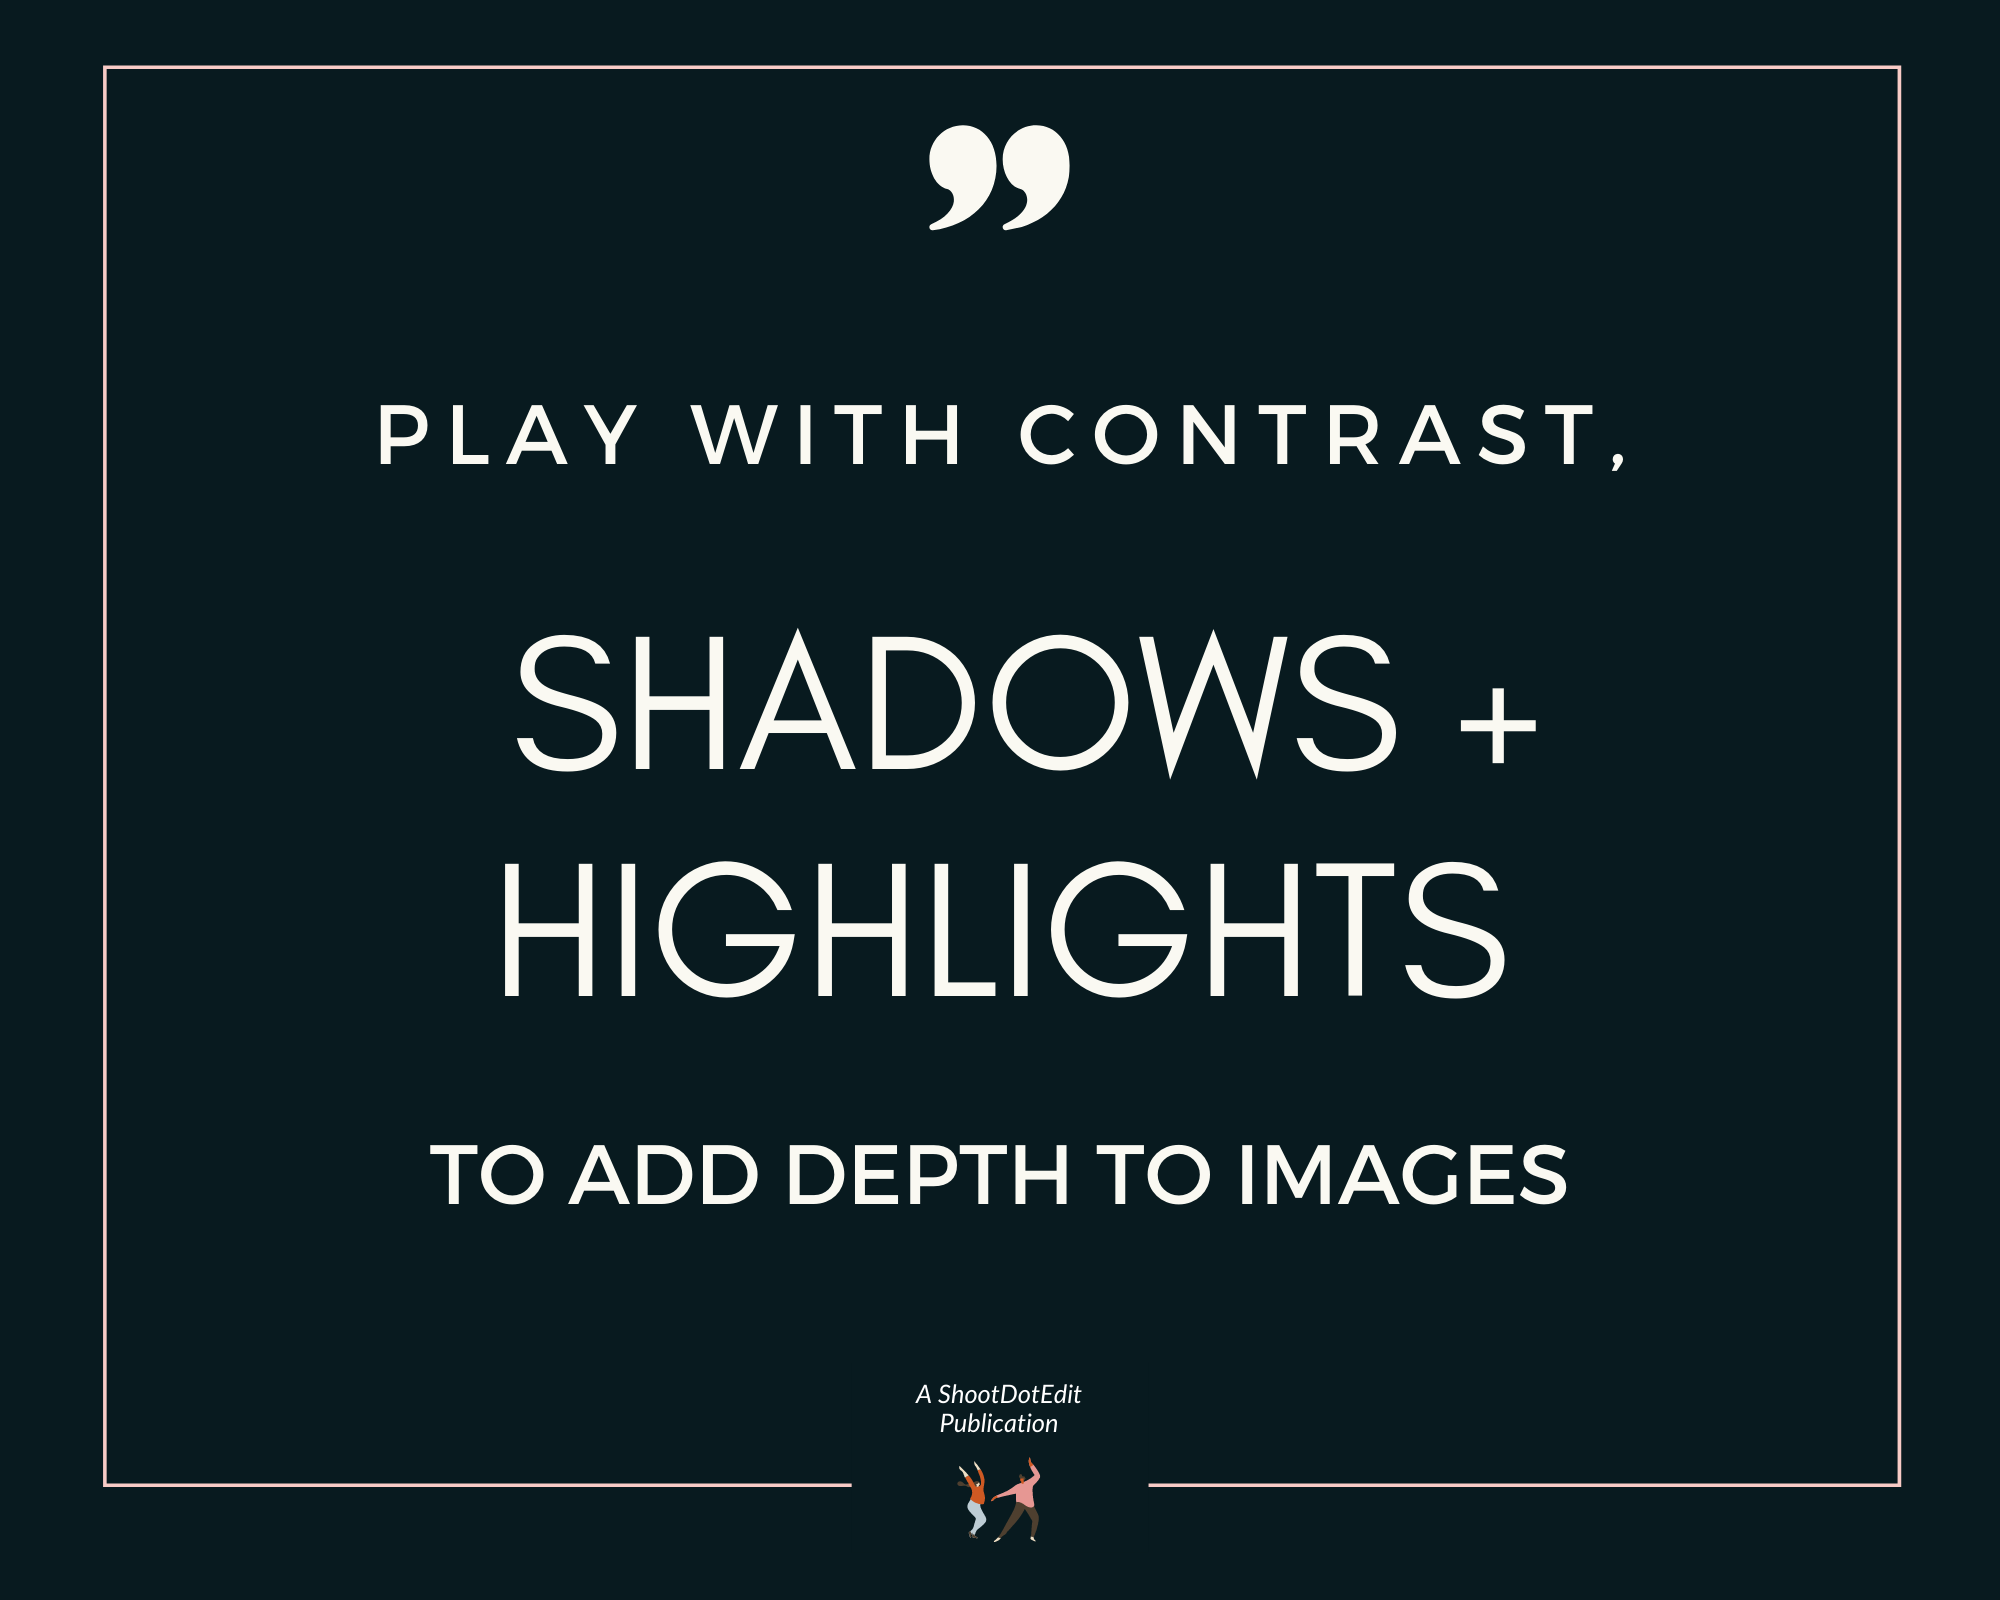 Infographic stating play with contrast shadows and highlights to add depth to images